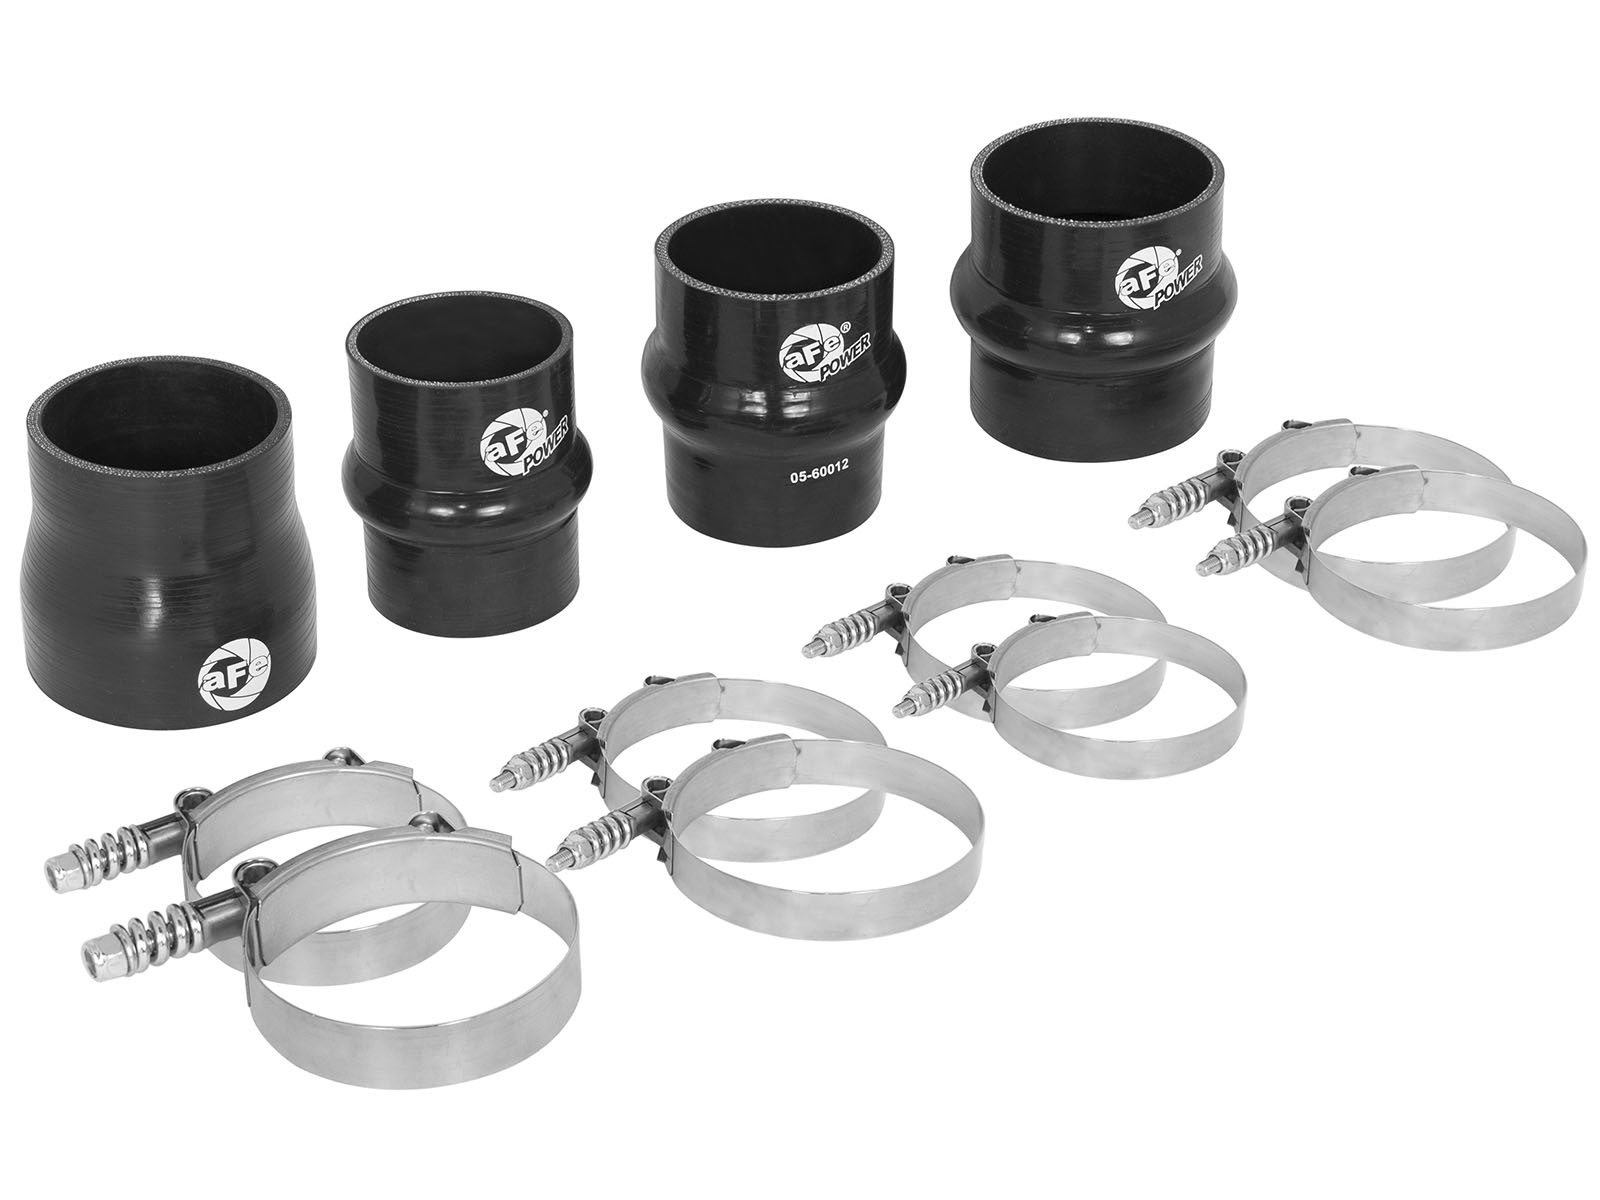 aFe POWER 46-20080AA BladeRunner Intercooler Couplings & Clamps Kit; aFe GT Series Intercooler & aFe Tubes